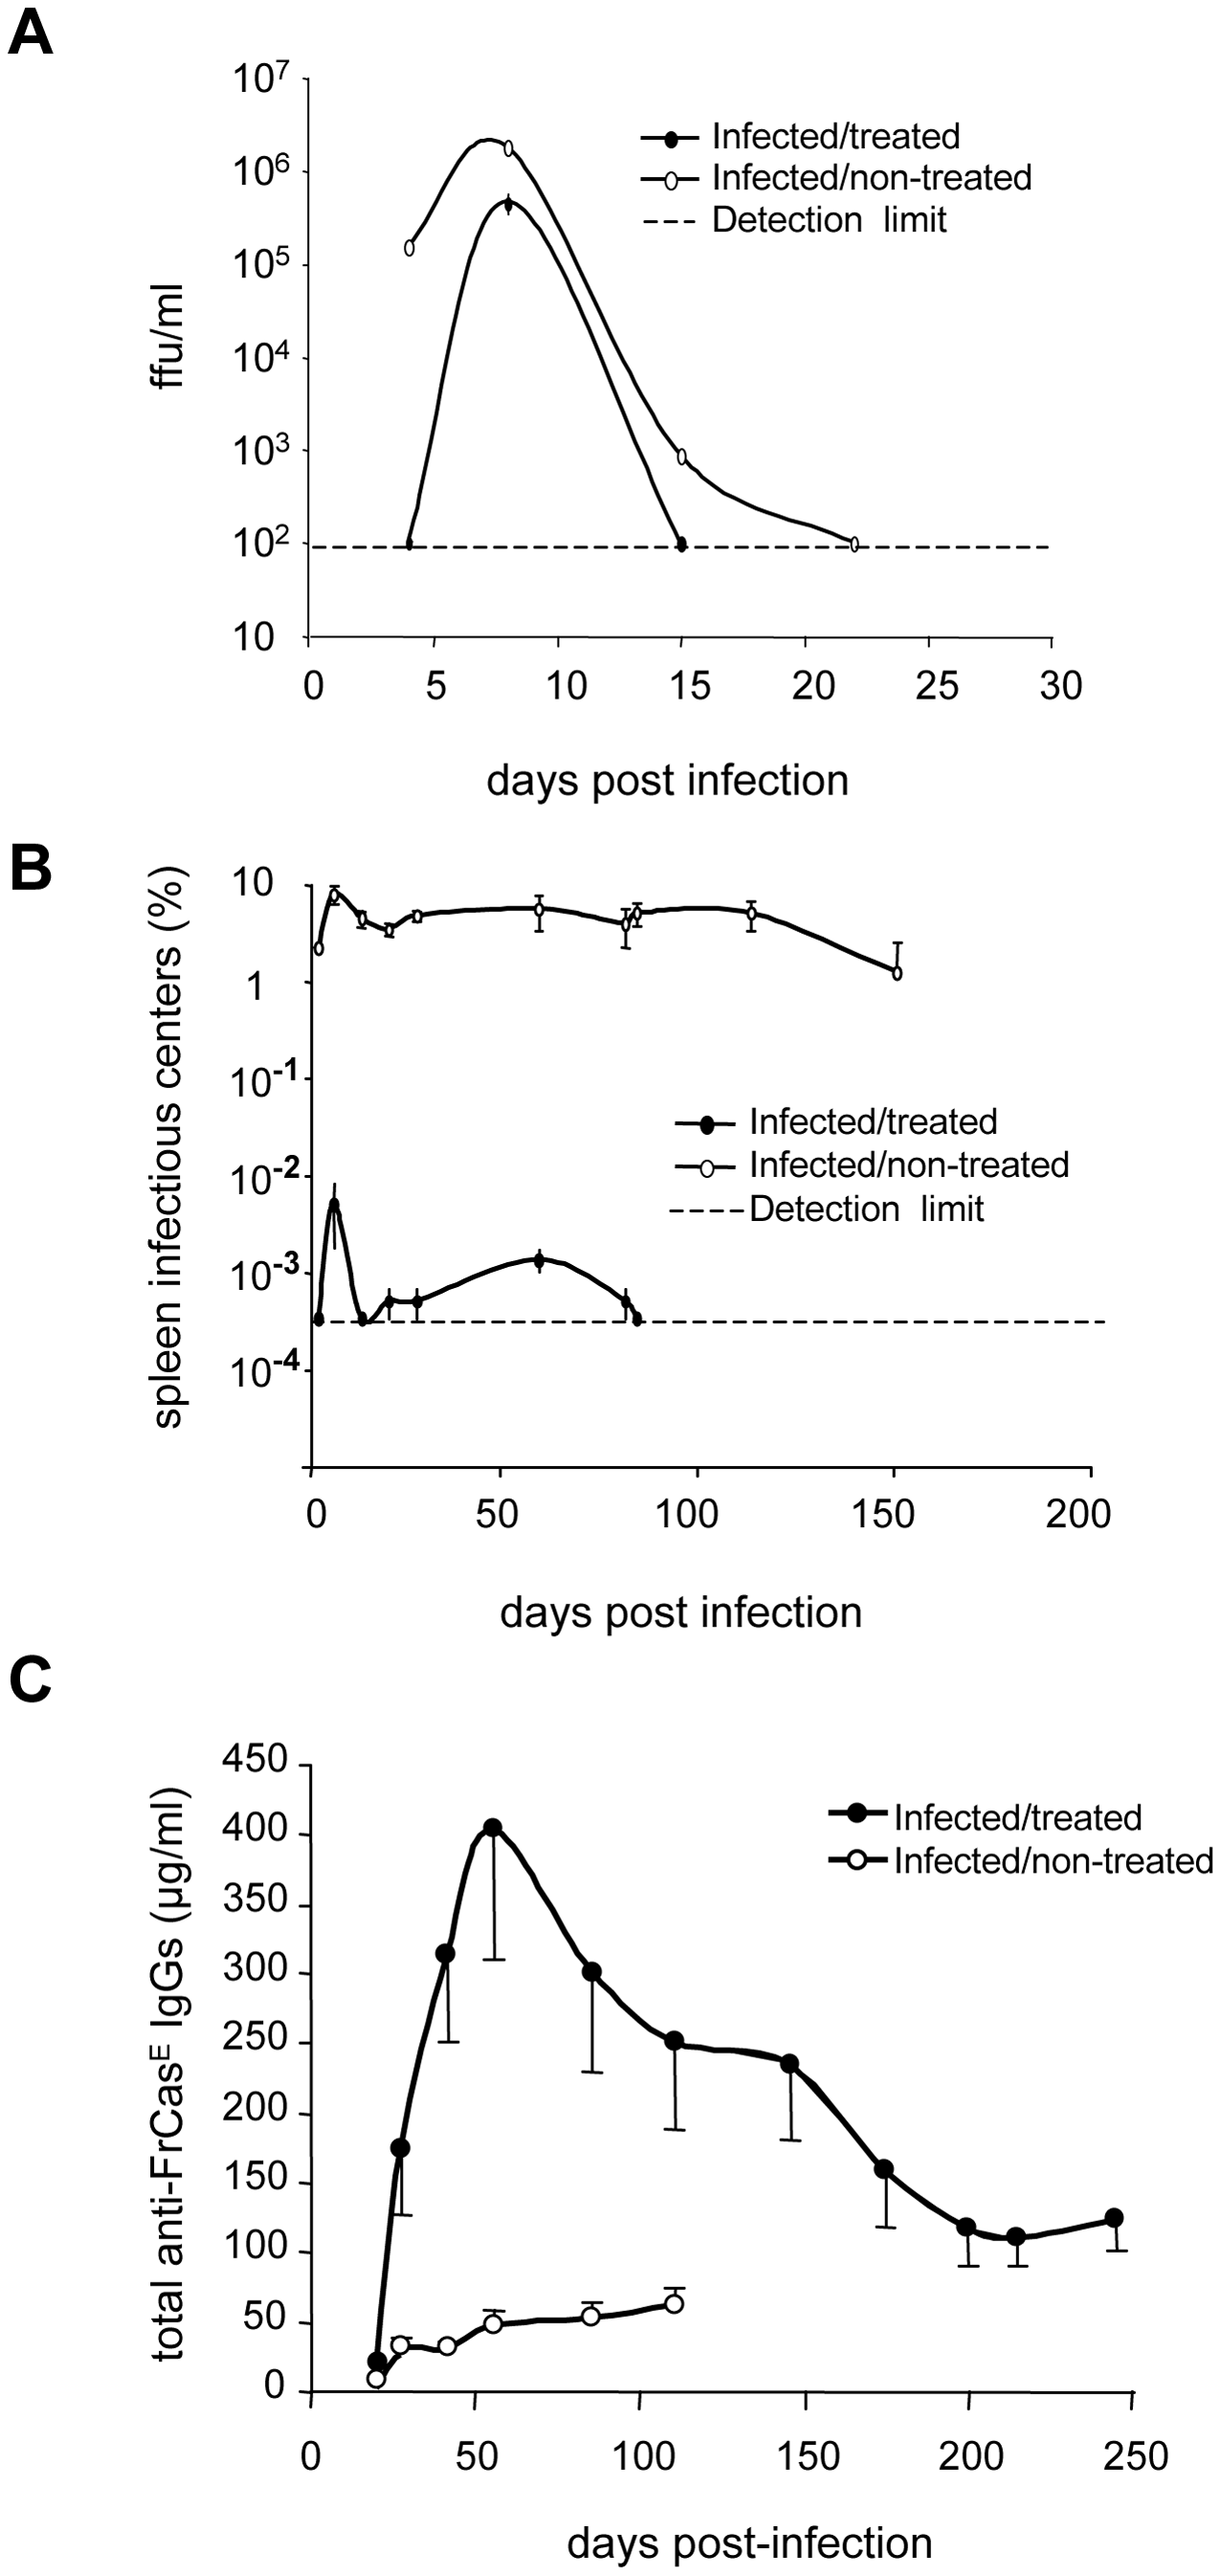 Differences in viremia, spleen infectious centers and anti-FrCas<sup>E</sup> IgG responses between infected/treated and infected/non-treated mice.